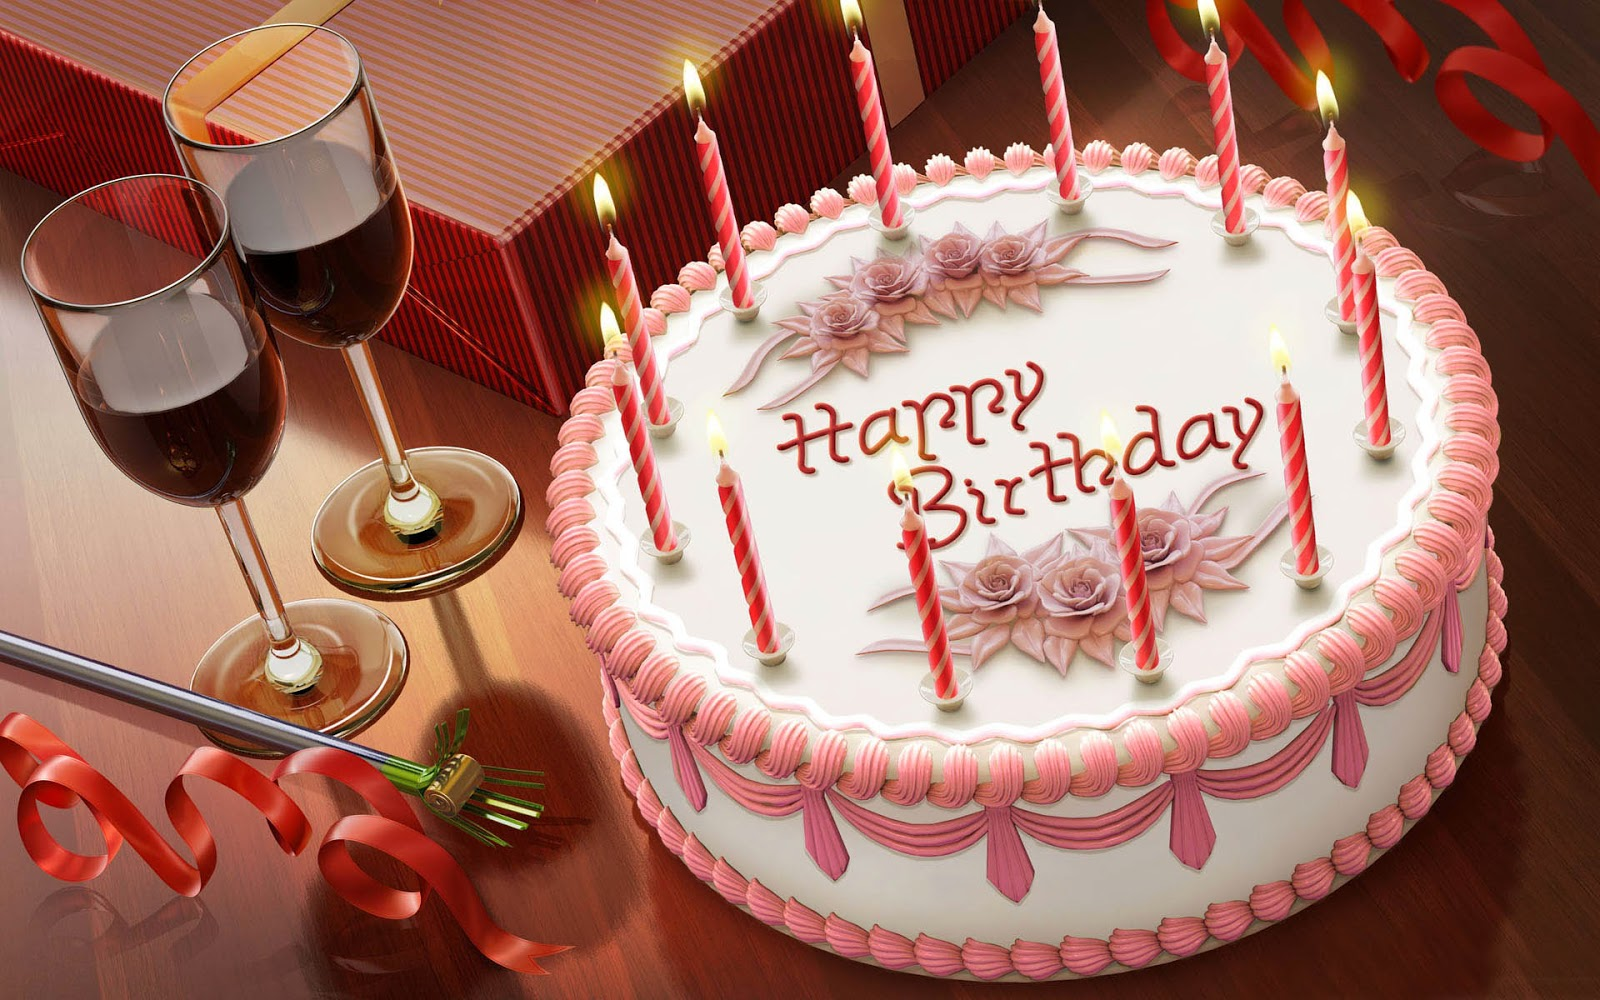 Best Birthday Wishes Quotes 26 Images Happy Birthday Wishes Quotes For Wife And Best Wishes